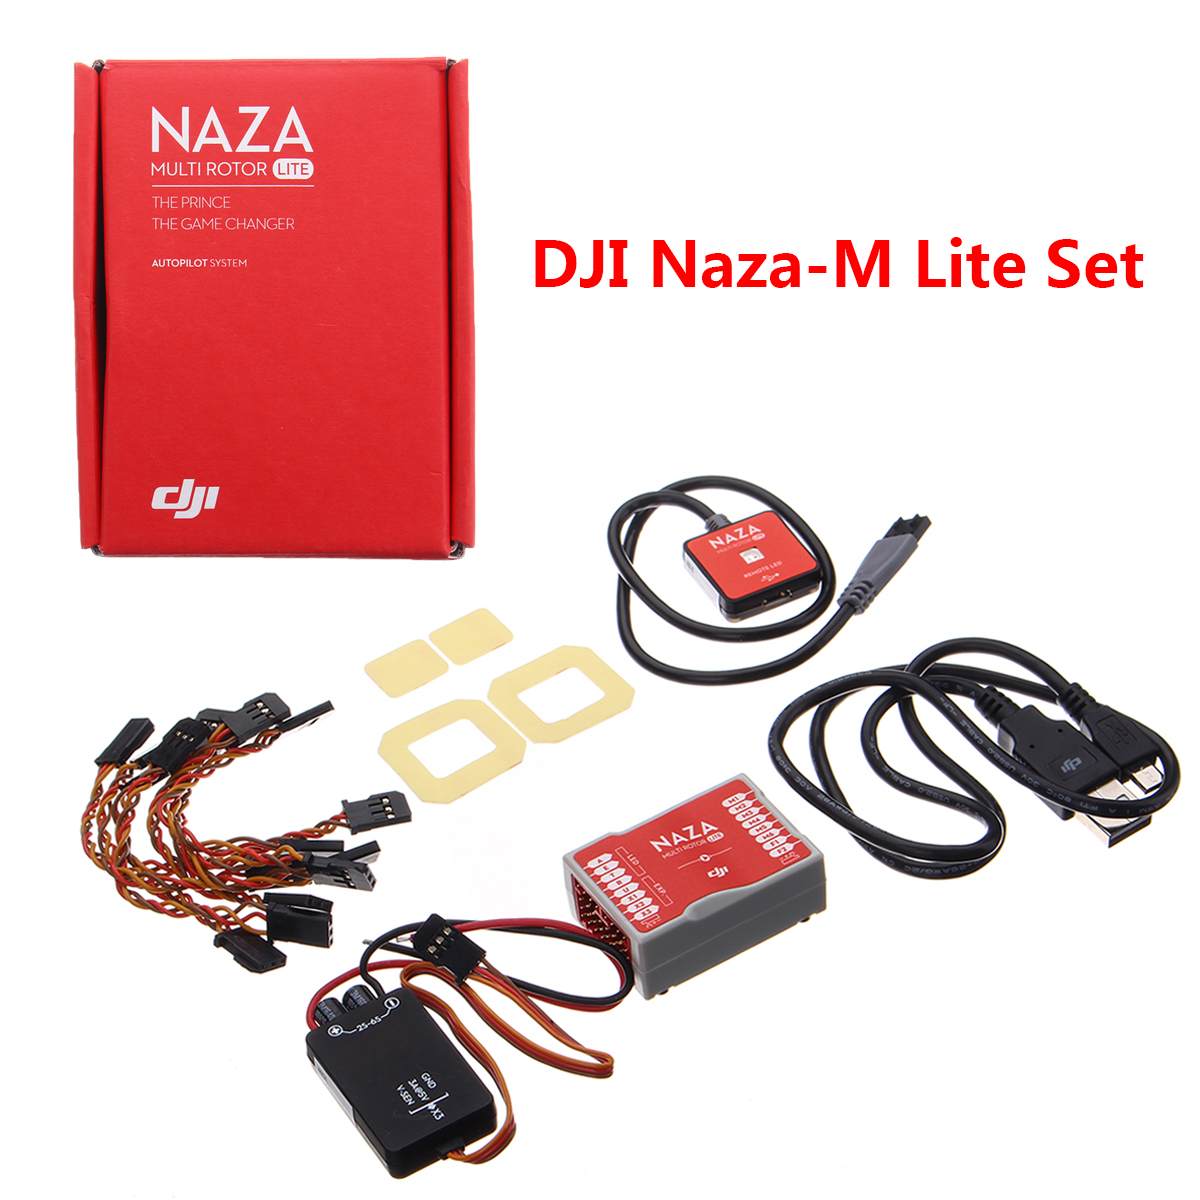 for Self-leveling and Altitude Holding with Failsafe Mode Naza-M Lite Autopilot System Designed for RC Drone All-in-One Designfor Self-leveling and Altitude Holding with Failsafe Mode Naza-M Lite Autopilot System Designed for RC Drone All-in-One Design